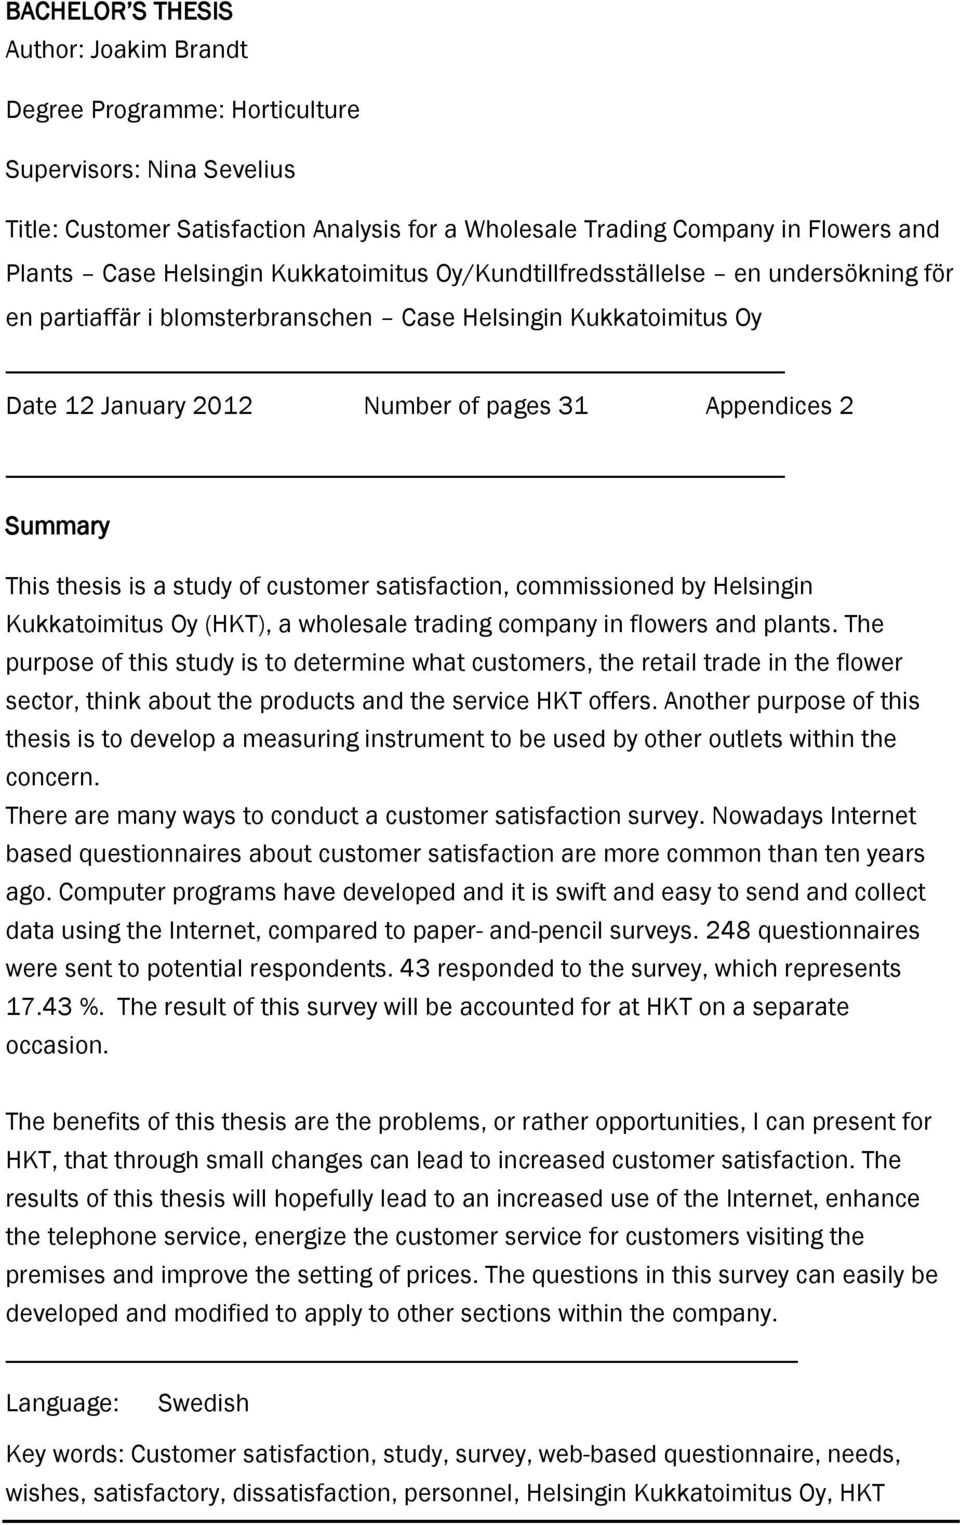 This thesis is a study of customer satisfaction, commissioned by Helsingin Kukkatoimitus Oy (HKT), a wholesale trading company in flowers and plants.